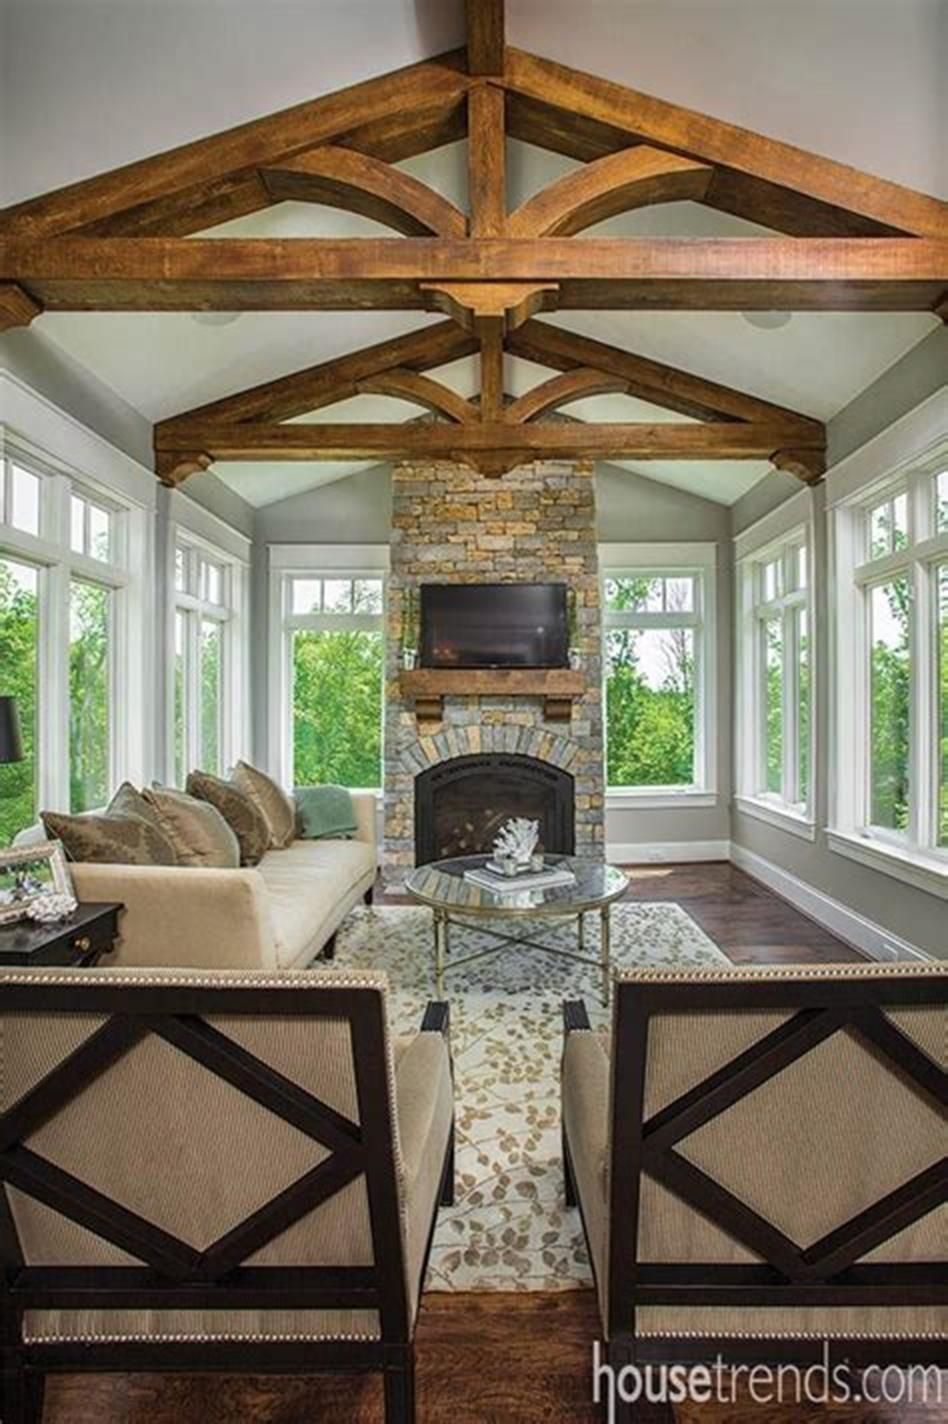 Back Porch Additions Best Ideas About Room Additions On House Additions Interior Designs: 50 Most Popular Affordable Sunroom Design Ideas On A Budget